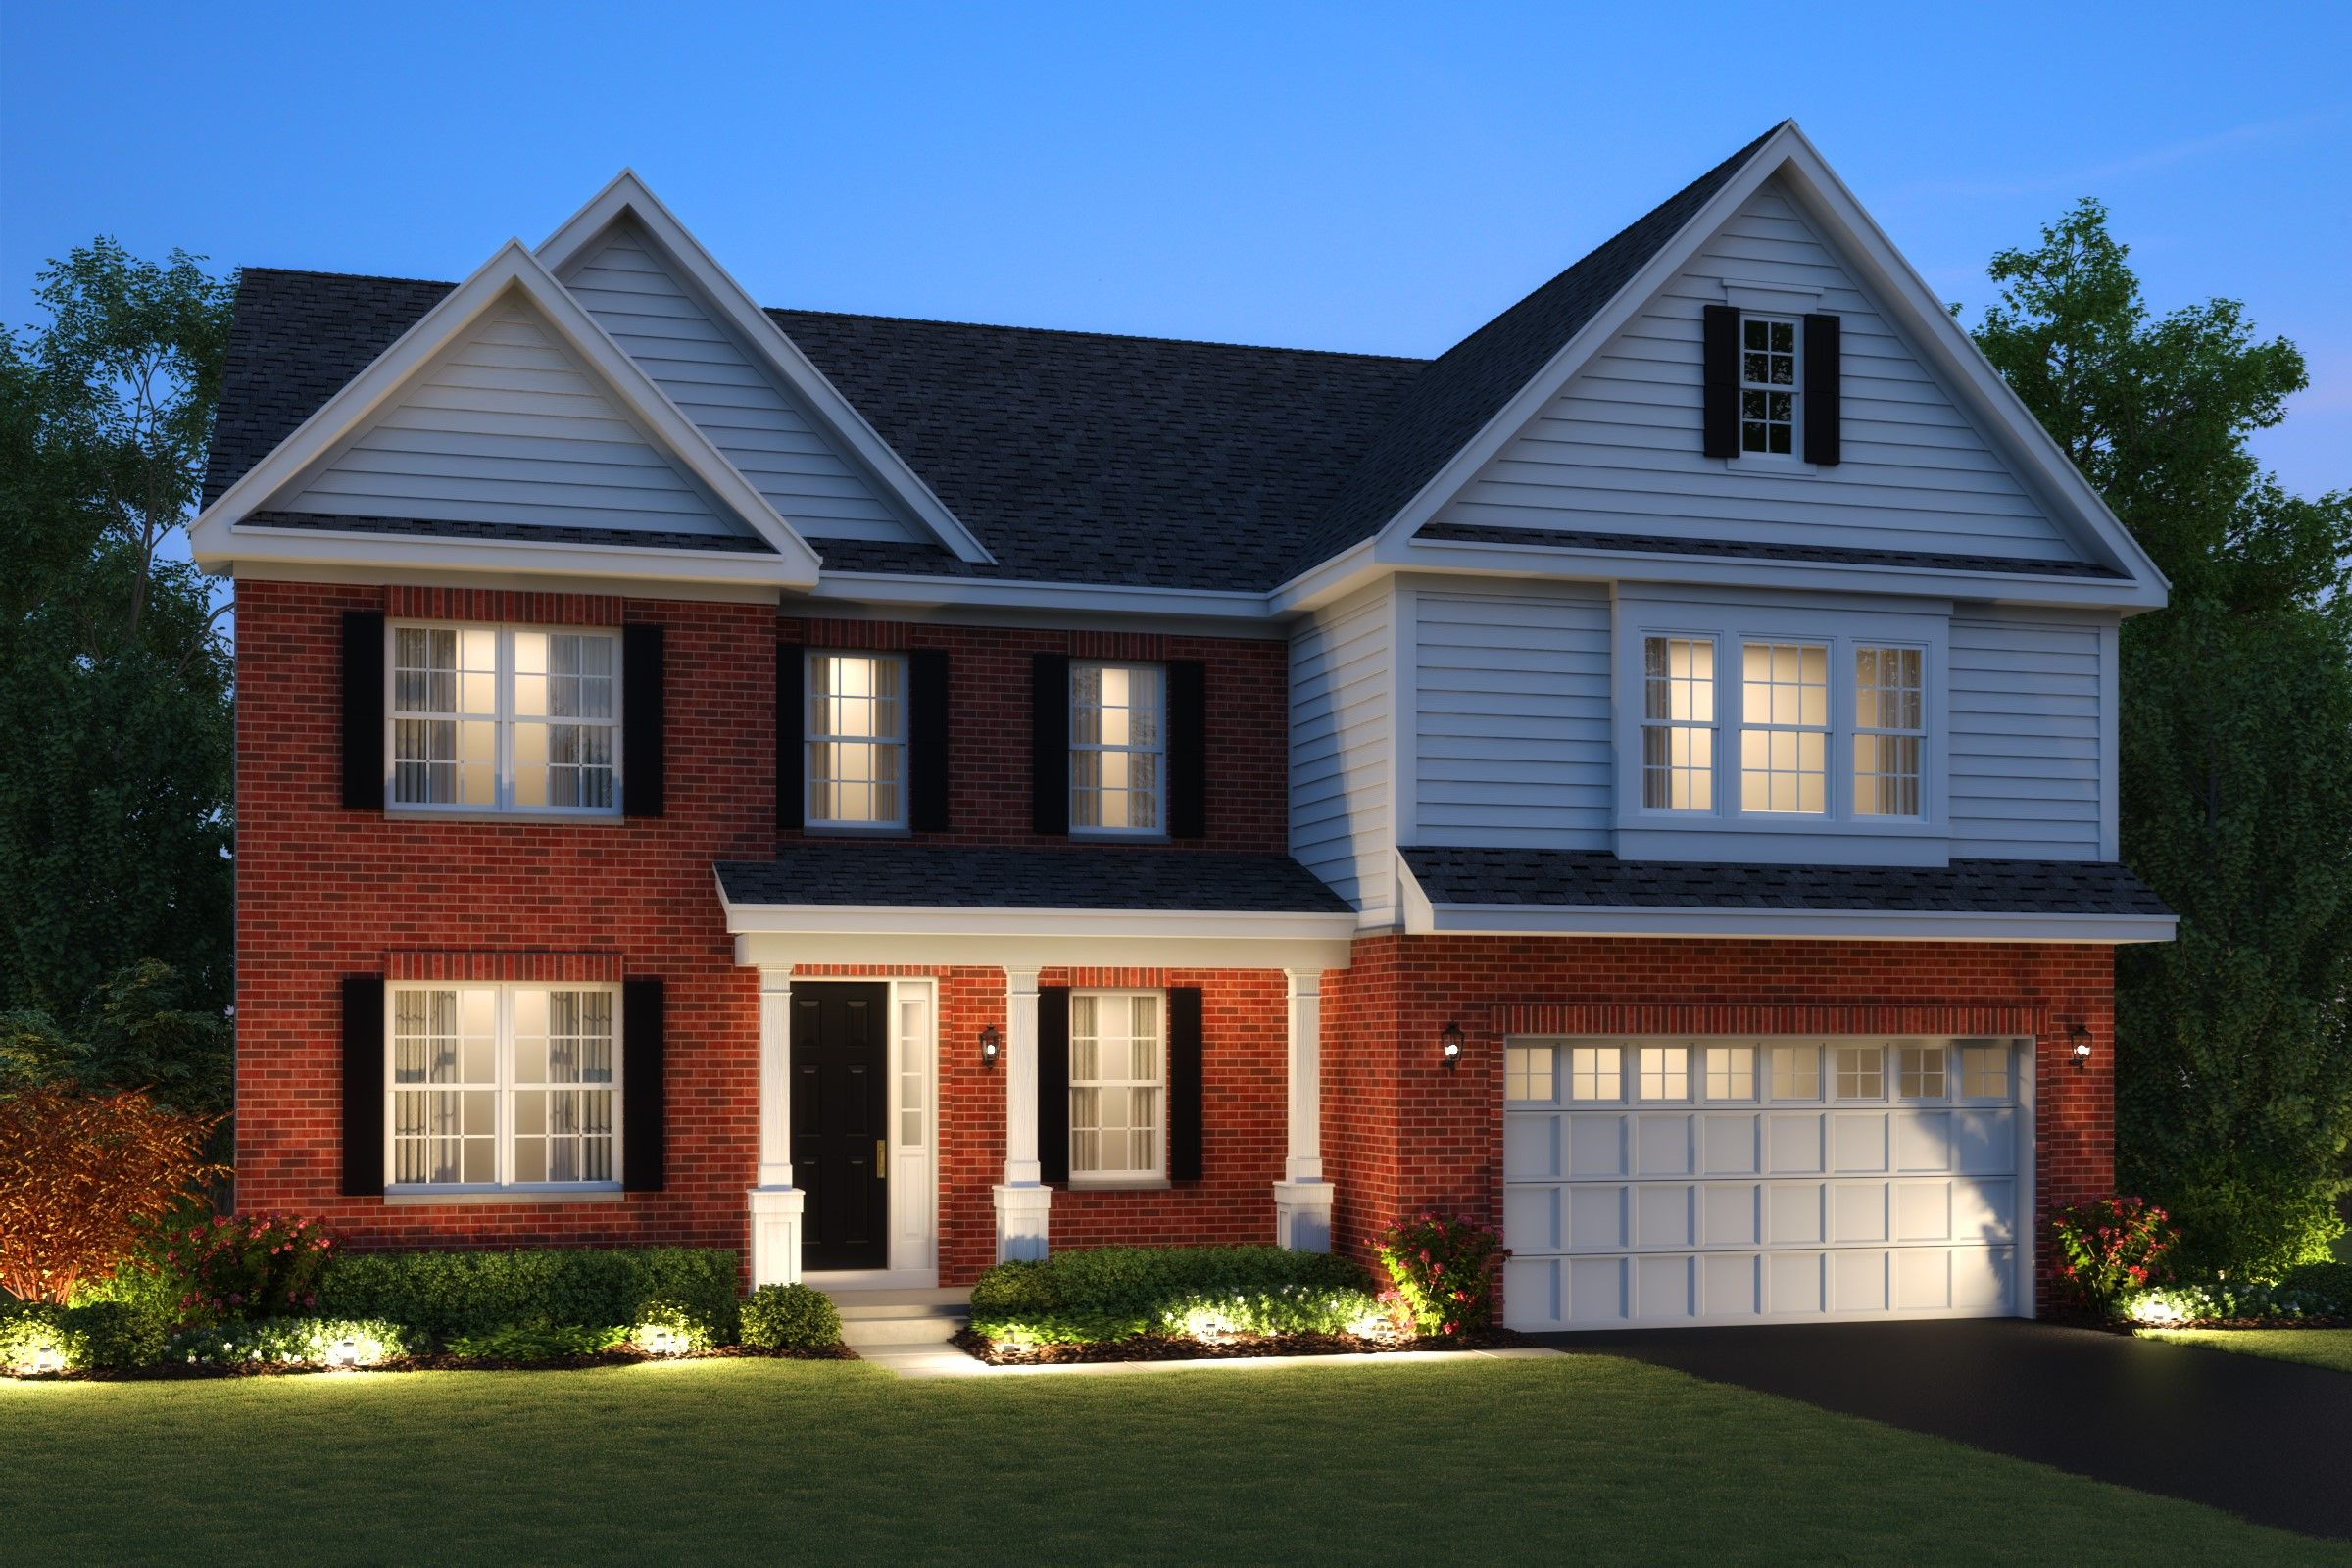 Single Family for Active at North Pointe Estates - Shelton 1201 North Pointe Drive Libertyville, Illinois 60048 United States